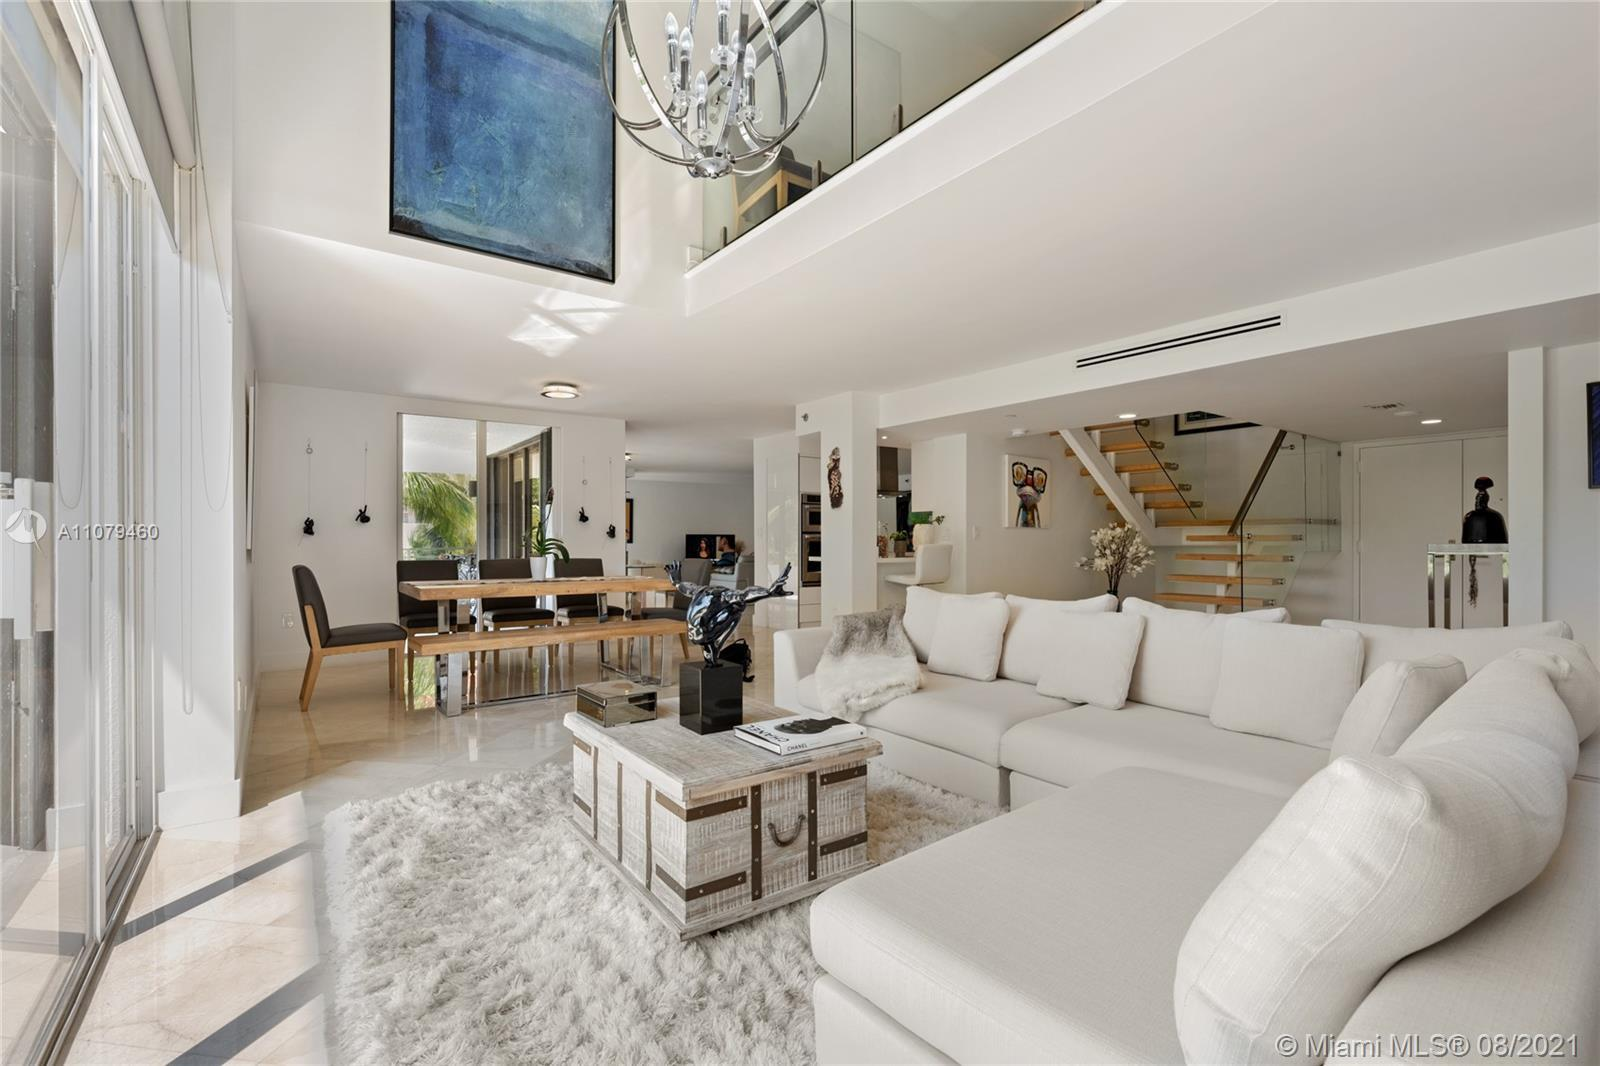 UNIQUE GEM! COMBINED UNITS 201 AND 203 AT BOUTIQUE BRICKELL EAST CONDO. AMPLE, REMODELED 4 BED 4.5 B